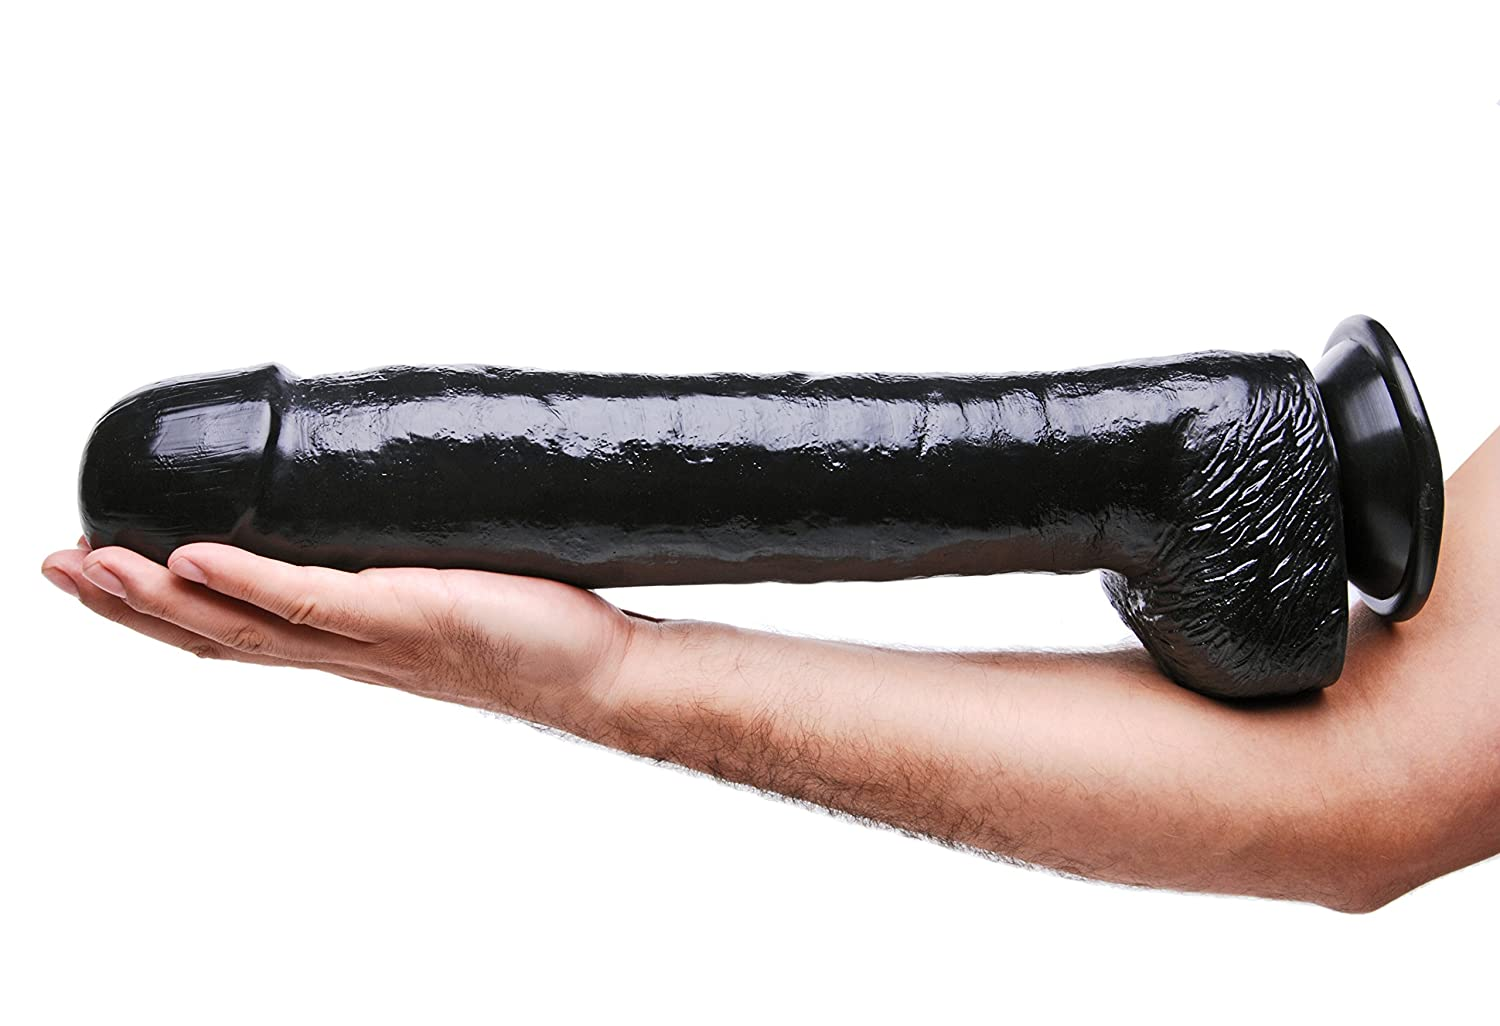 Gigantic huge dildo